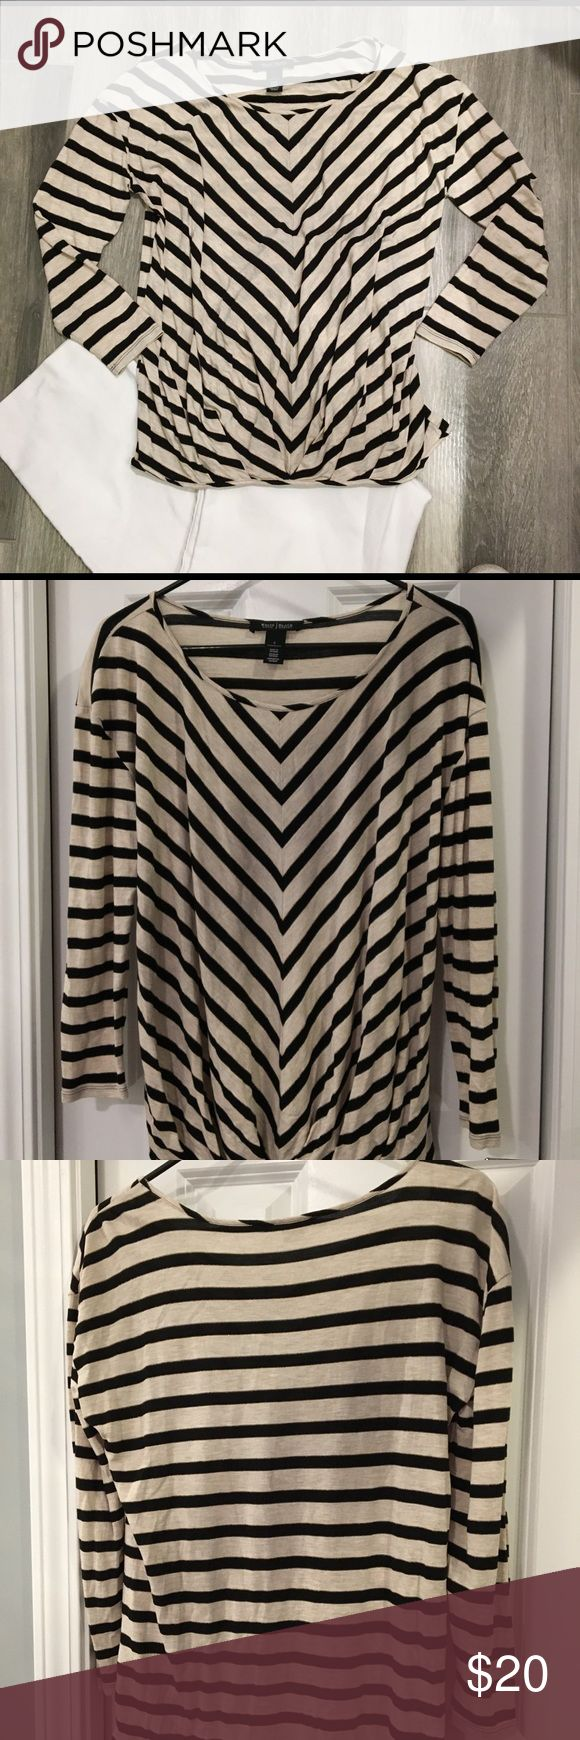 White House Black Market Slouchy Top Cream Black Comfortable and Classy Top Perfect for a spring day, office or weekend Size Small White House Black Market Tops Tees - Long Sleeve